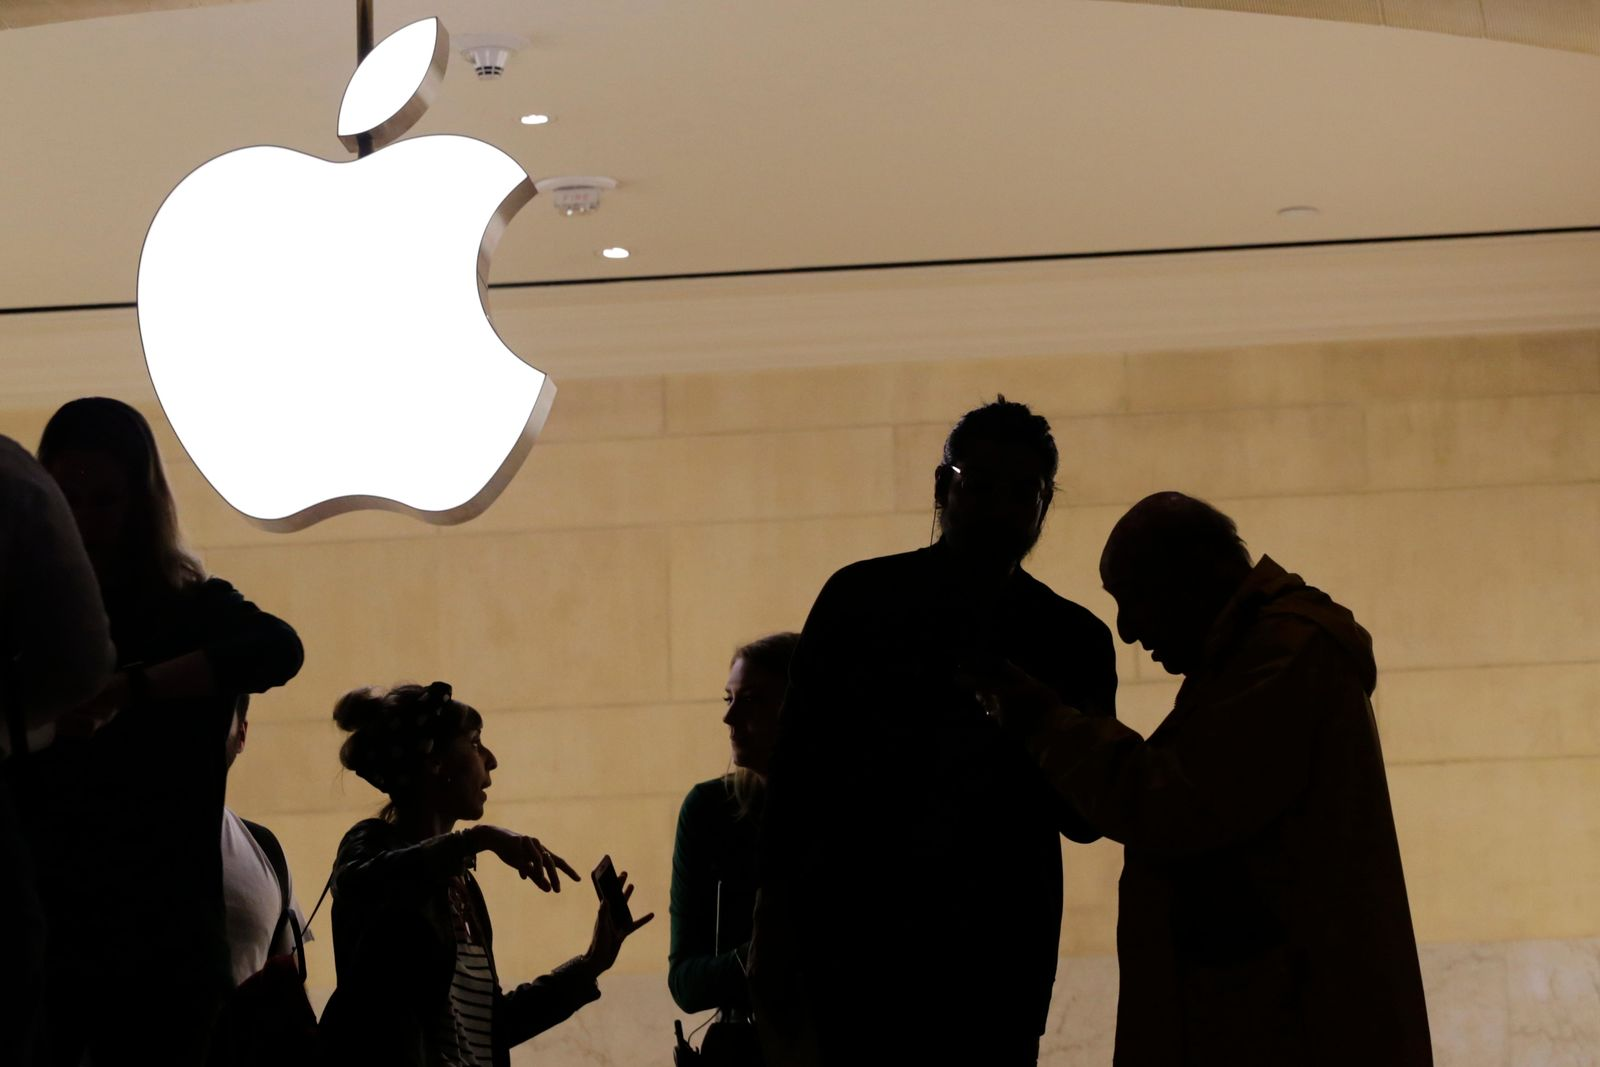 FILE- In this May 31, 2018, file photo customers enter the Apple store in New York. The Supreme Court is allowing consumers to pursue an antitrust lawsuit that claims Apple has unfairly monopolized the market for the sale of iPhone apps. (AP Photo/Mark Lennihan, File)